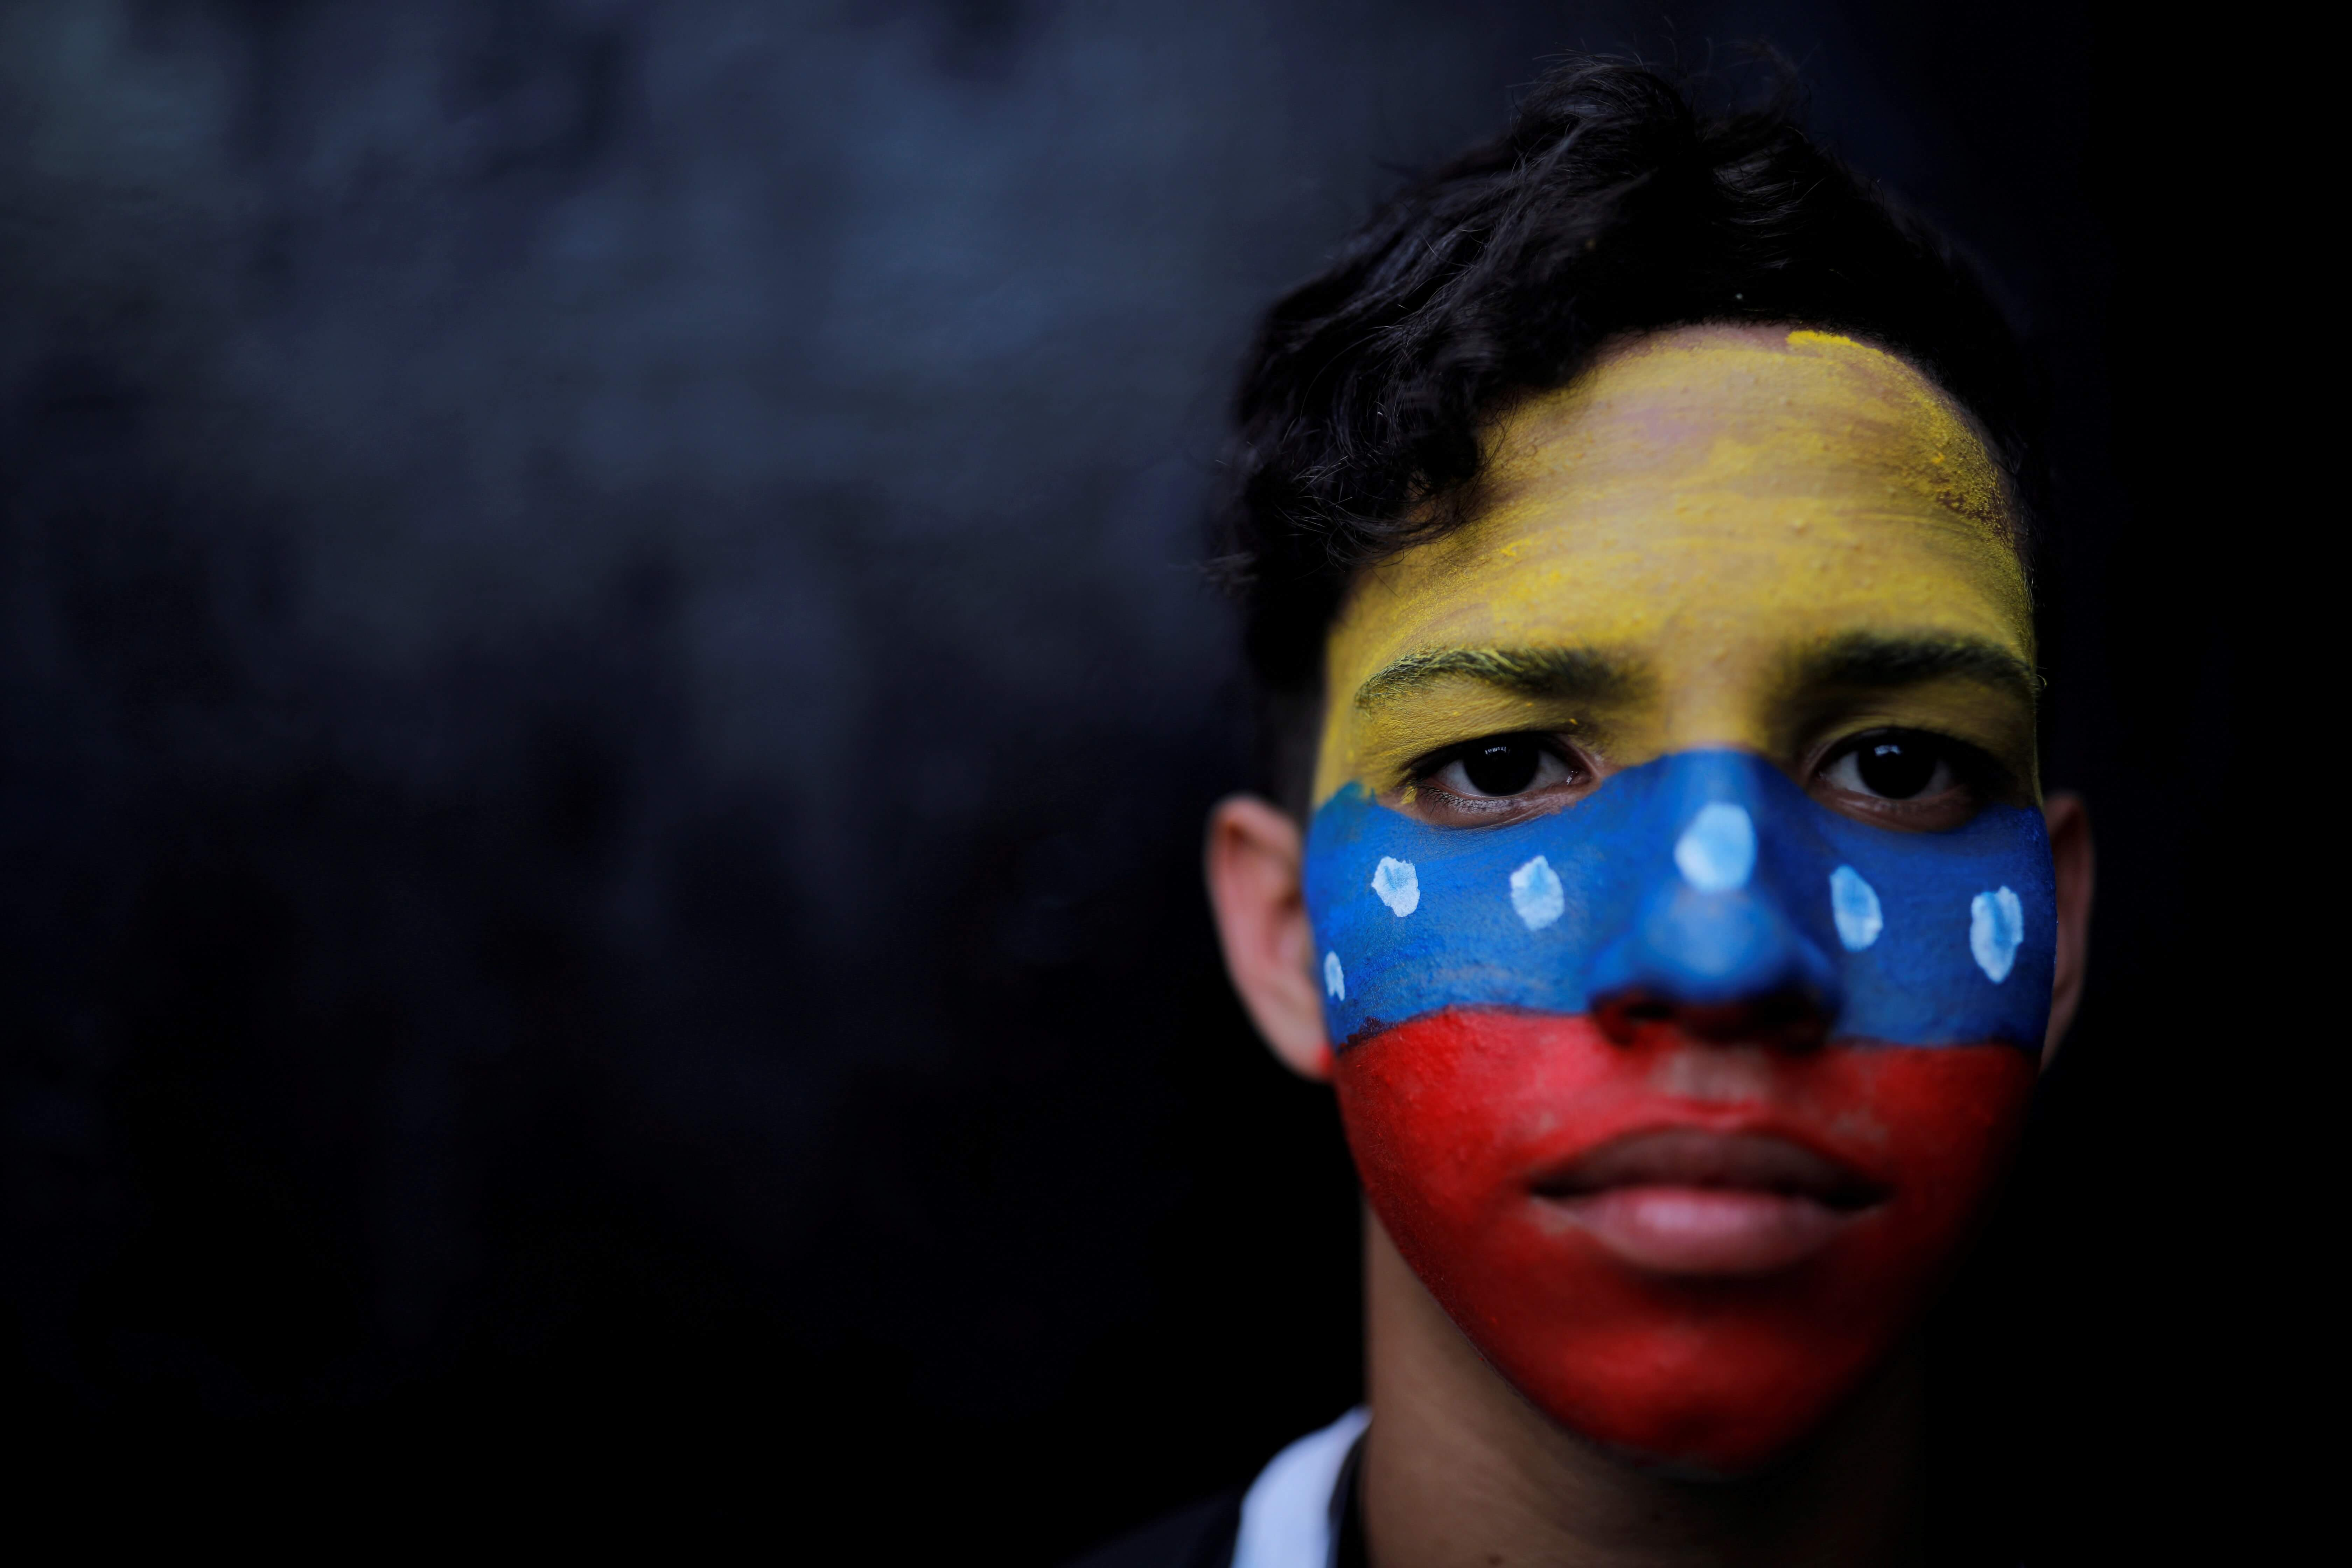 a closeup of a young boy with the Venezuelan flag painted on his face